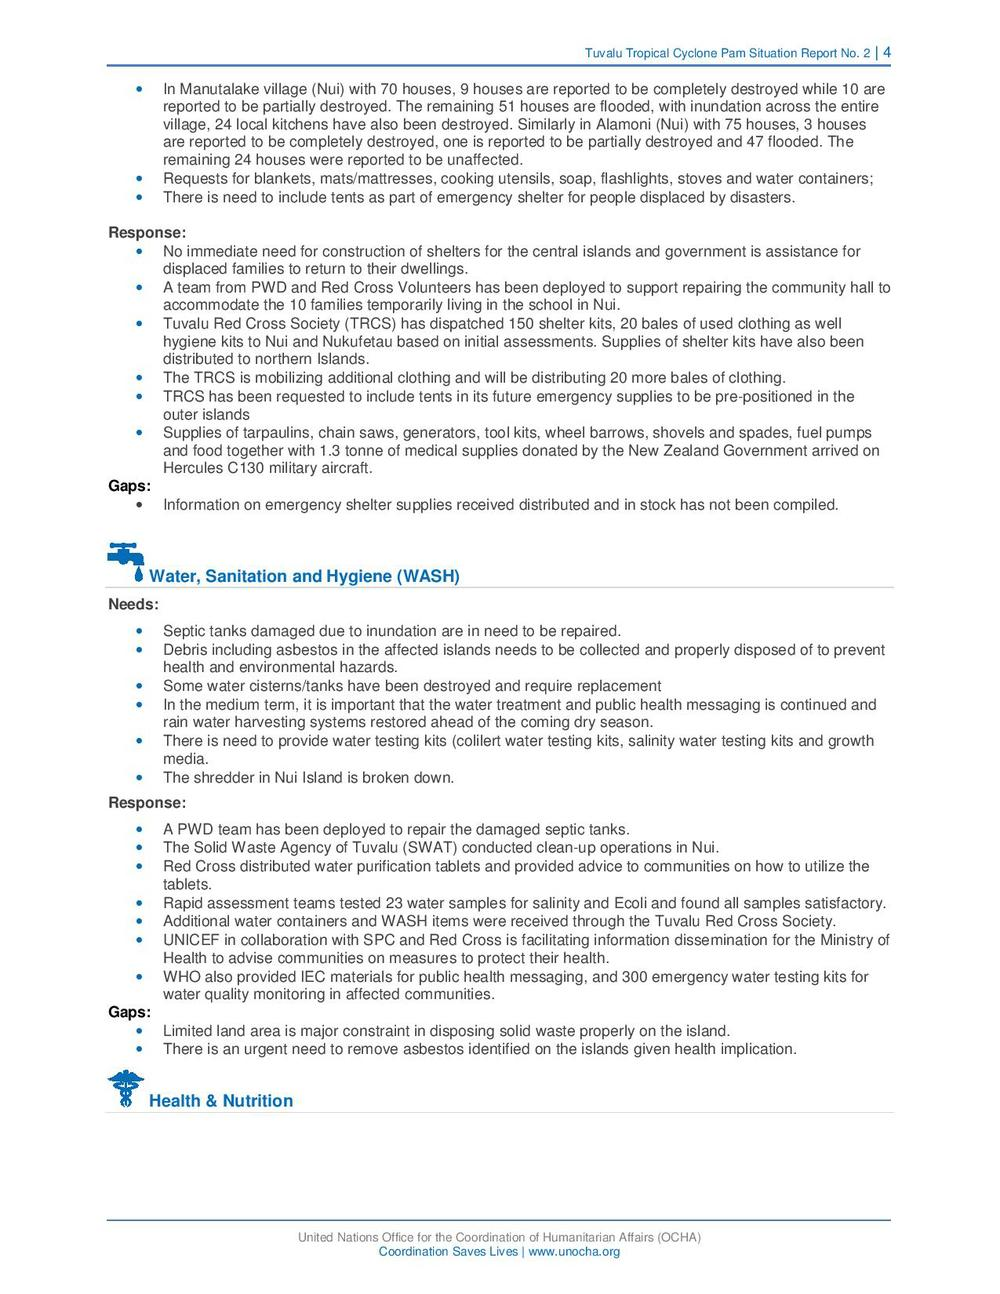 reliefweb.int_sites_reliefweb.int_files_resources_Tuvalu Tropical Cyclone Pam Situation Report No. 3-page-004.jpg